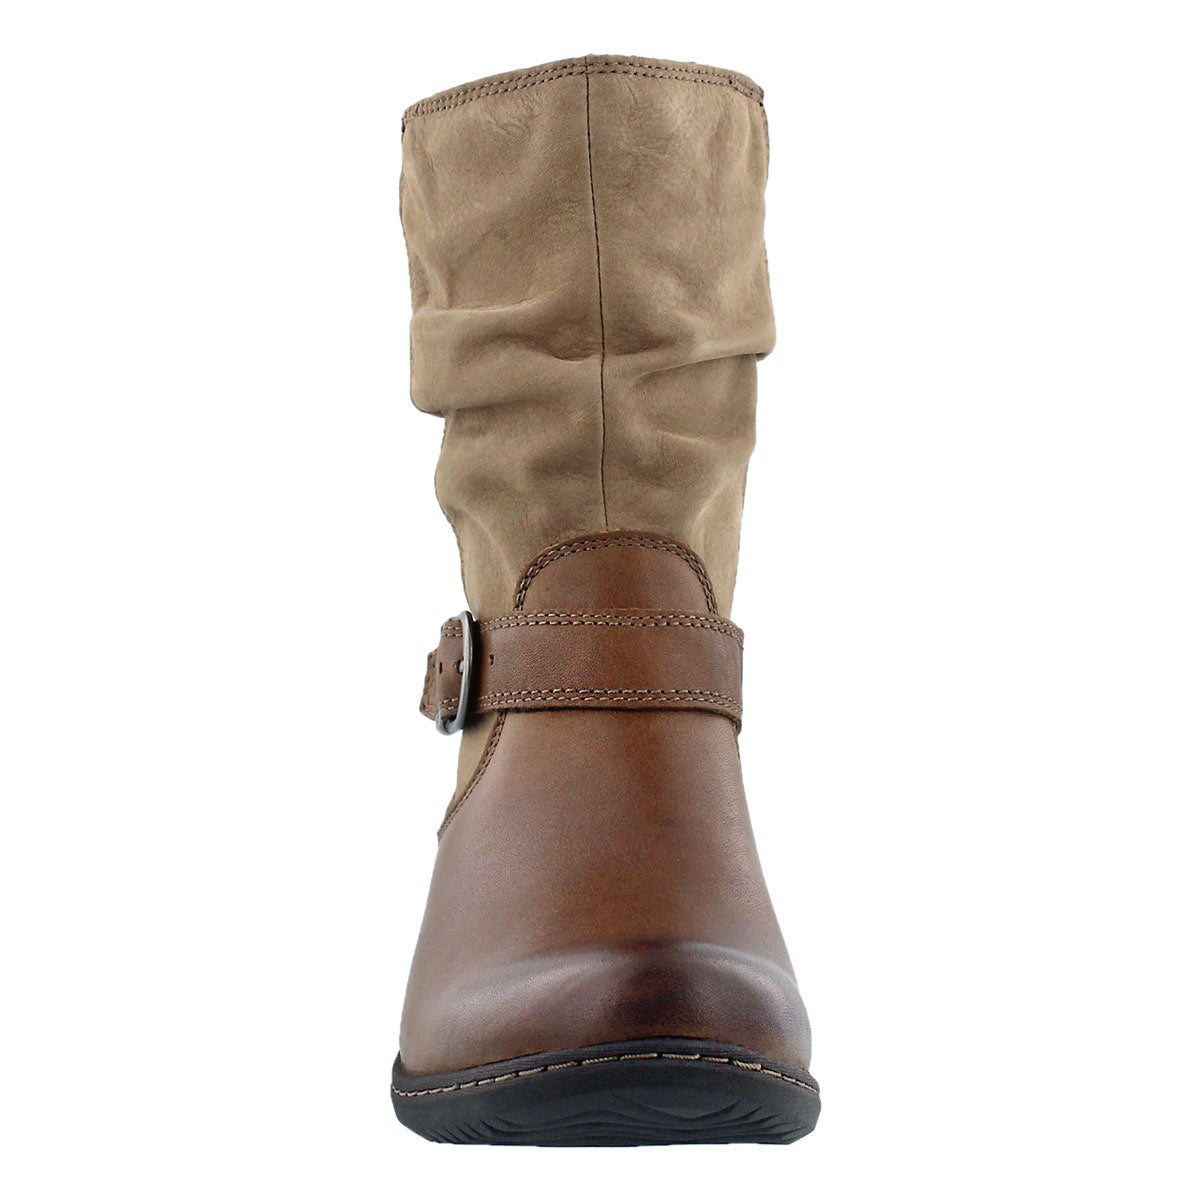 Lds Carly Mid hazelnut wtpf ankle boot